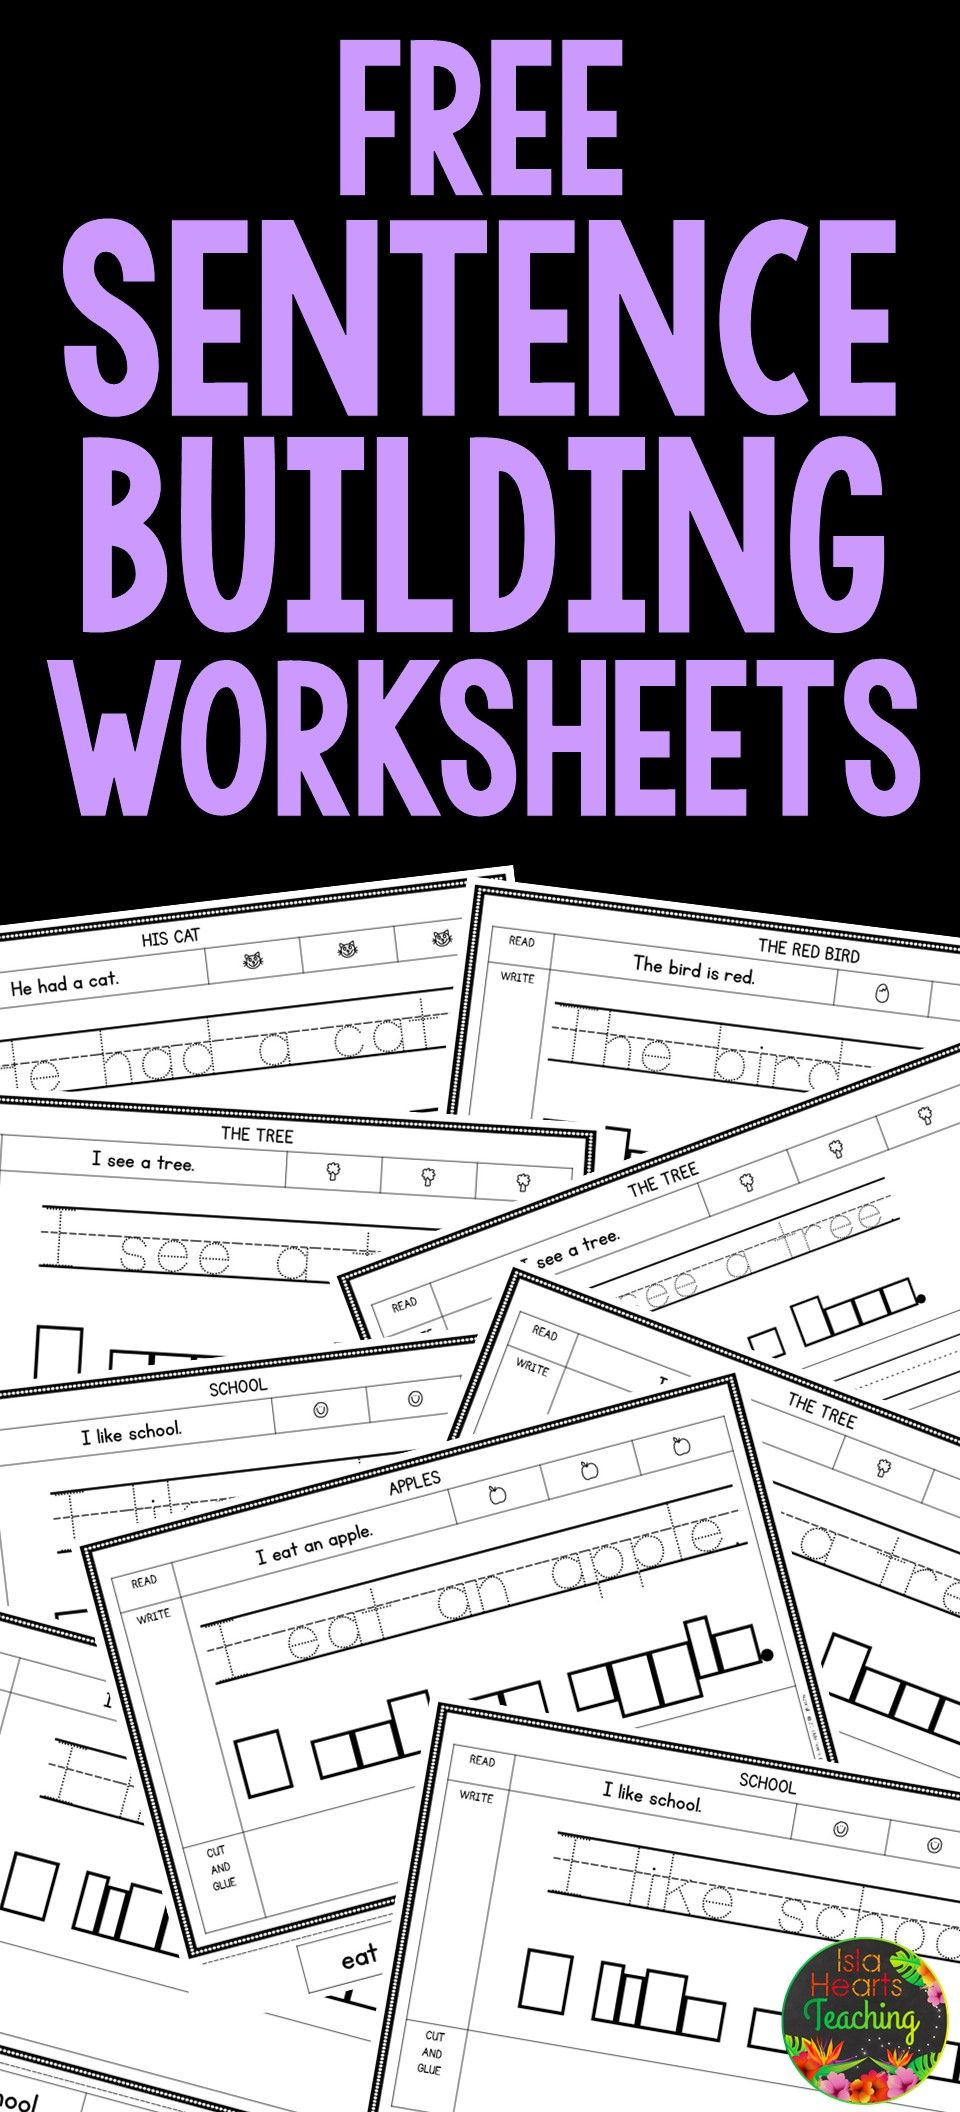 Sentence Building Worksheets (FREE) | TpT Language Arts Lessons ...